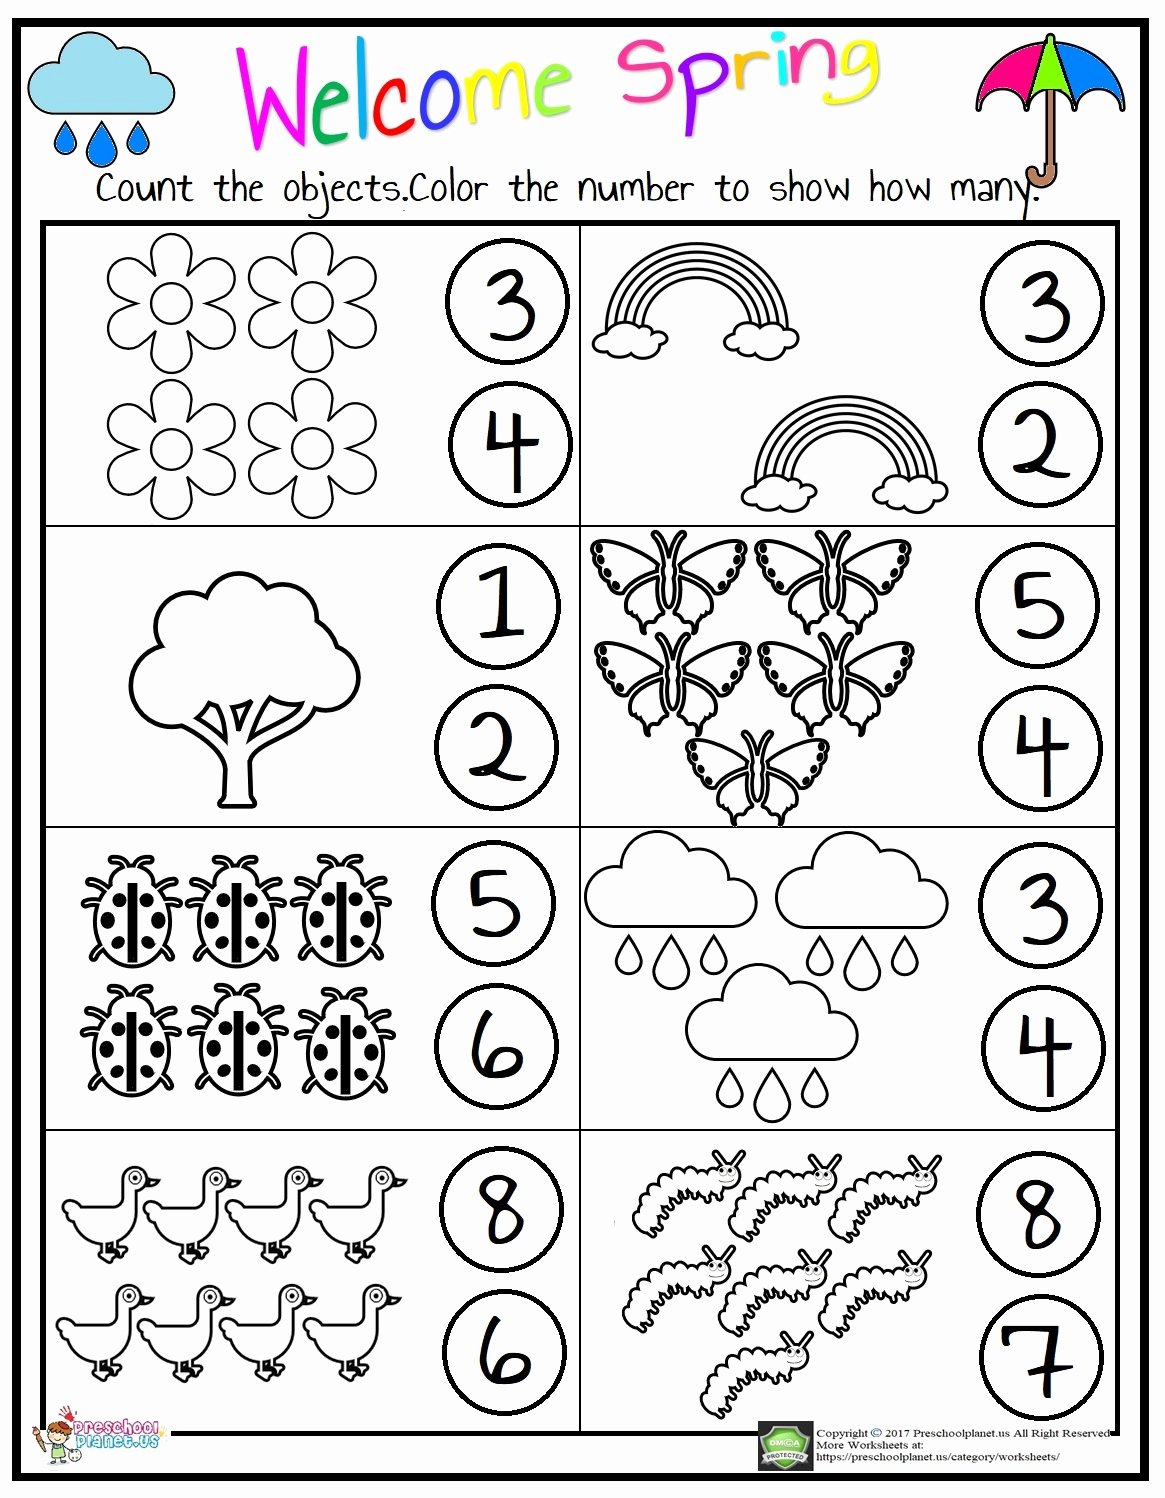 Spring themed Worksheets for Preschoolers Lovely Preschool Spring themed Worksheets Starlight Virgo